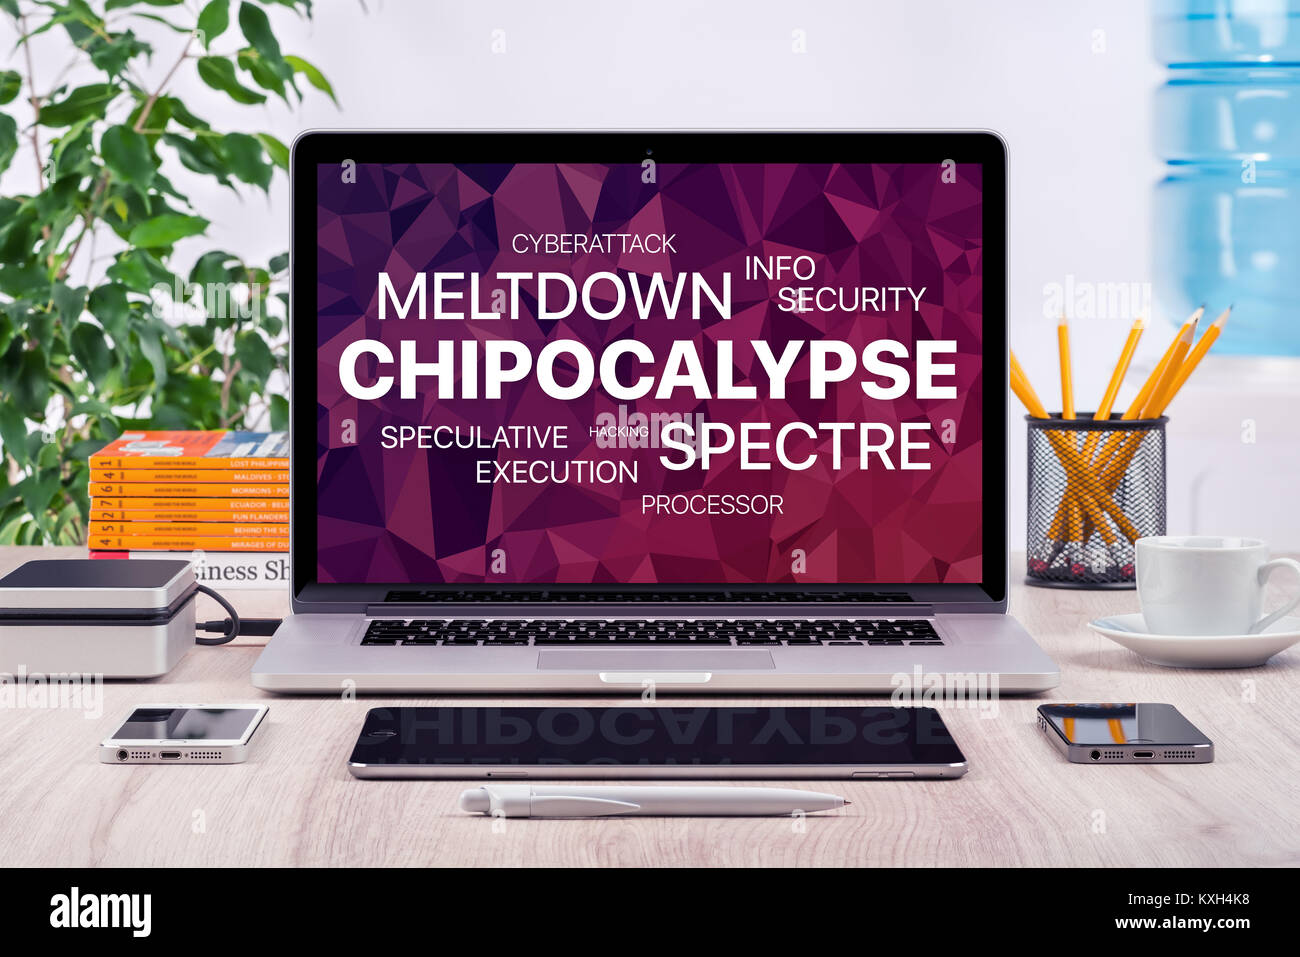 Chipocalypse concept with meltdown and spectre threat on laptop screen in office. - Stock Image